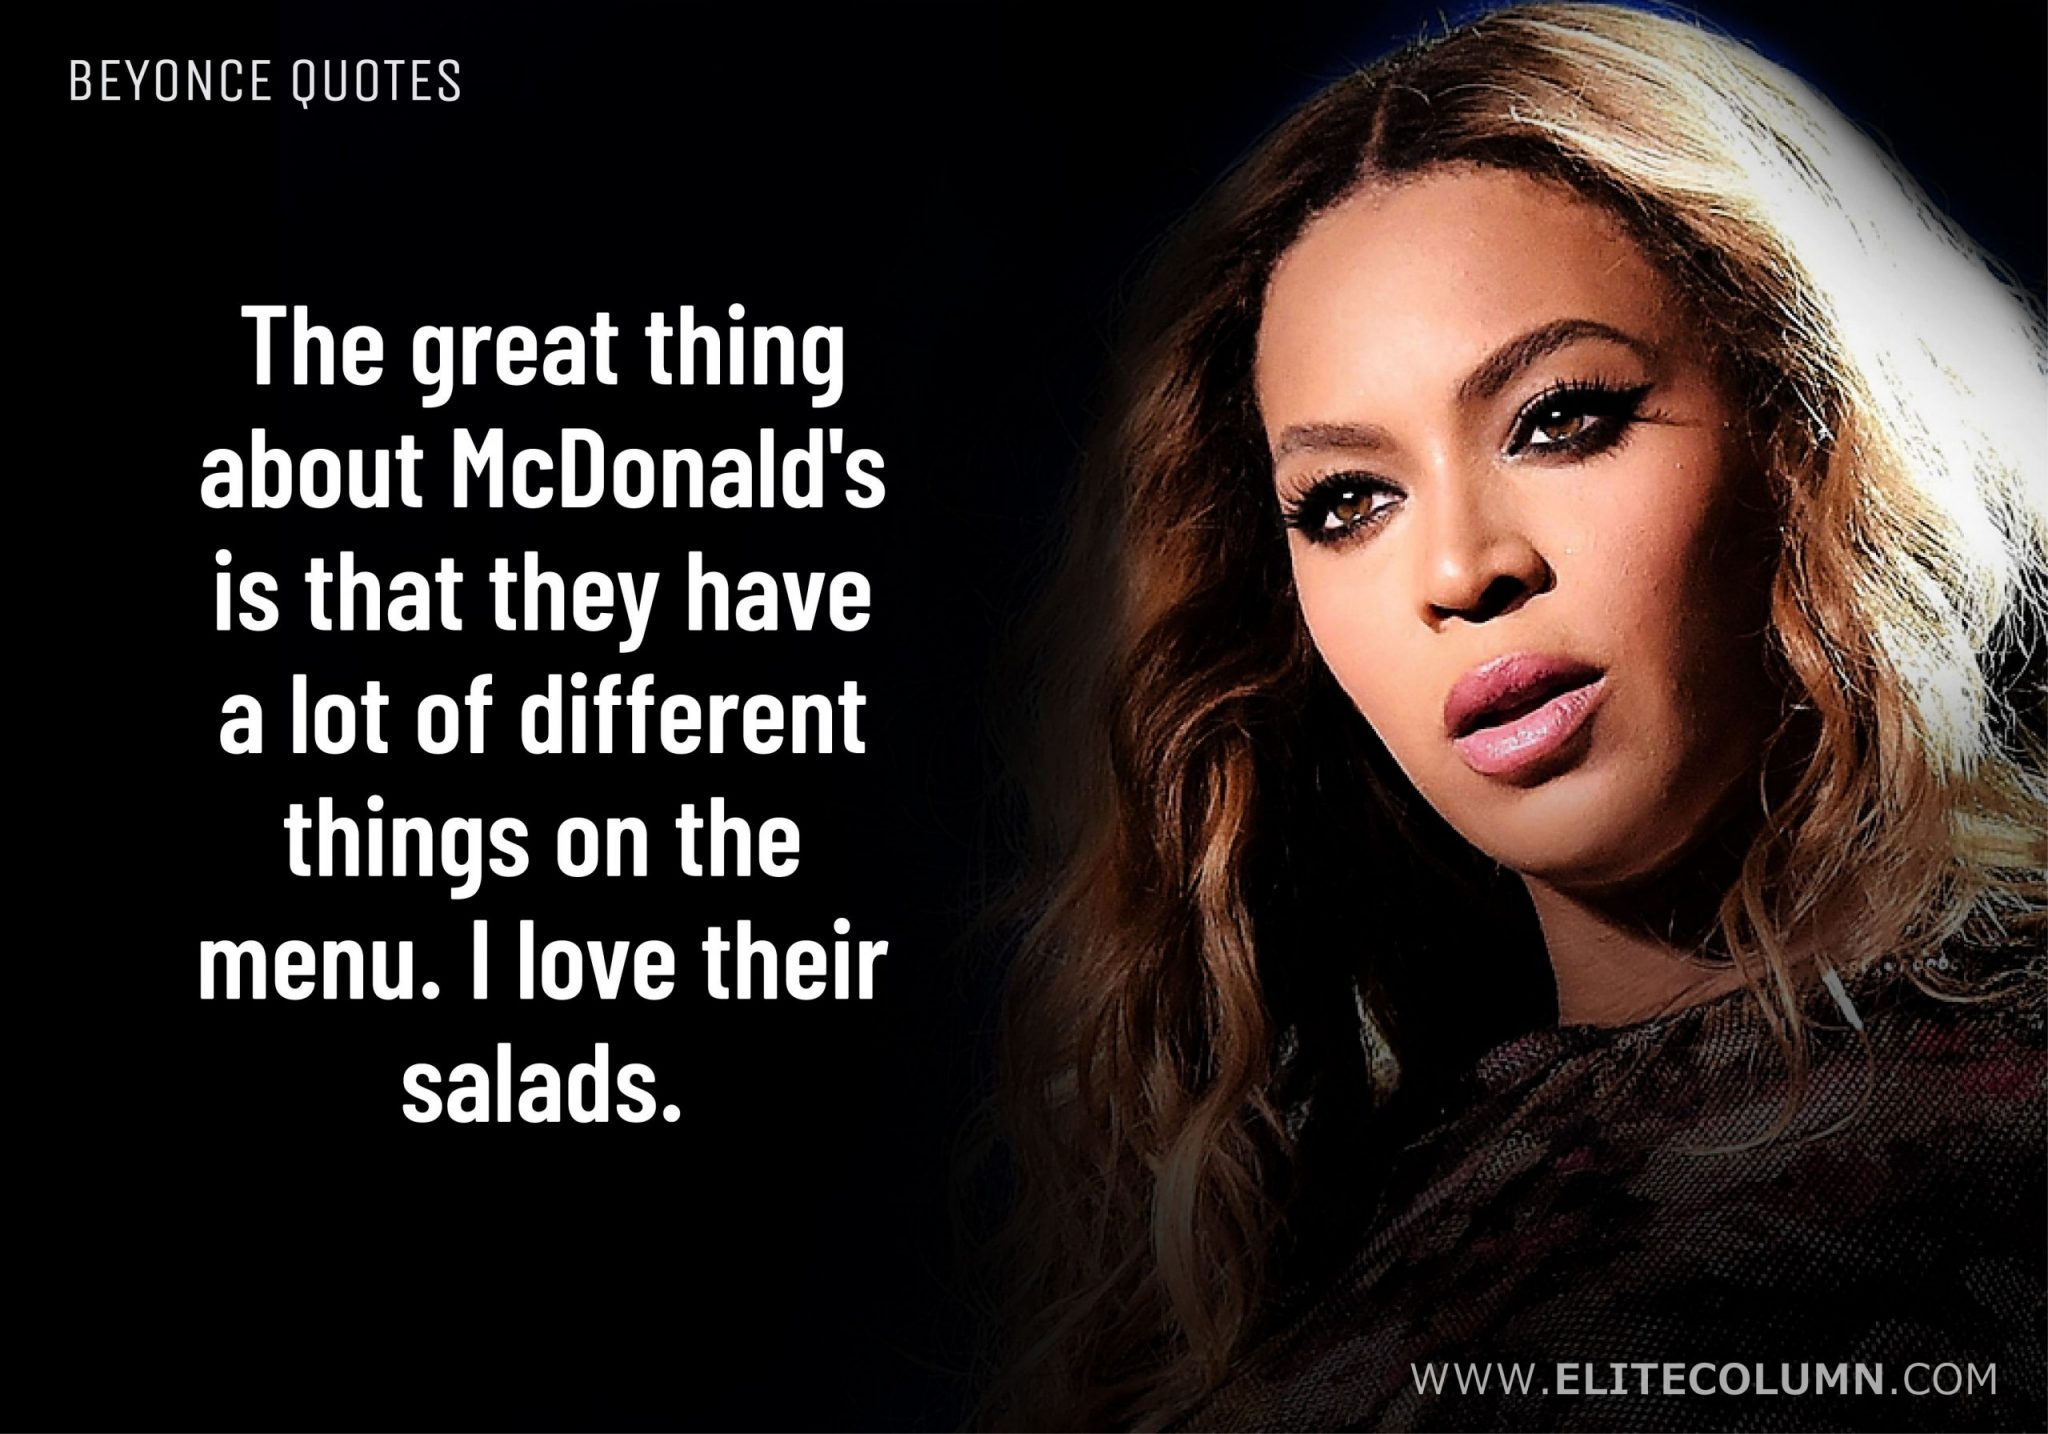 Beyonce Quotes (7)